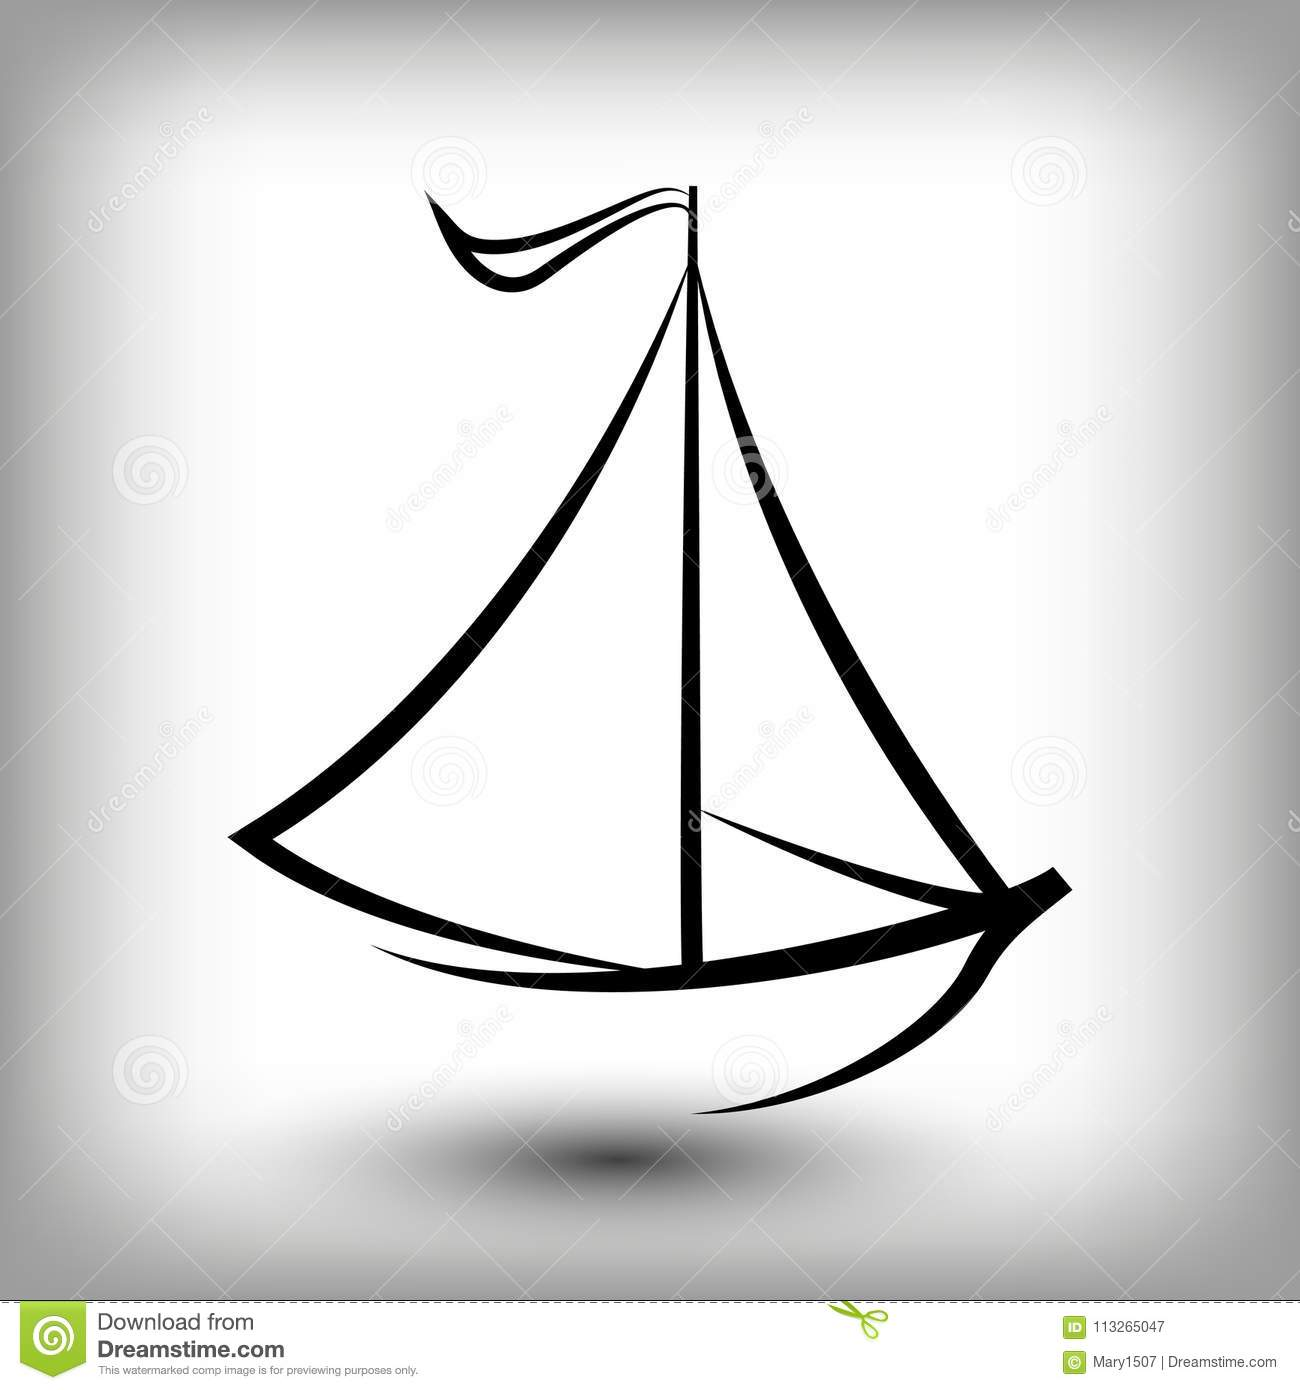 Yacht Logo Templates. Sail Boat Silhouettes. Stock Vector ...